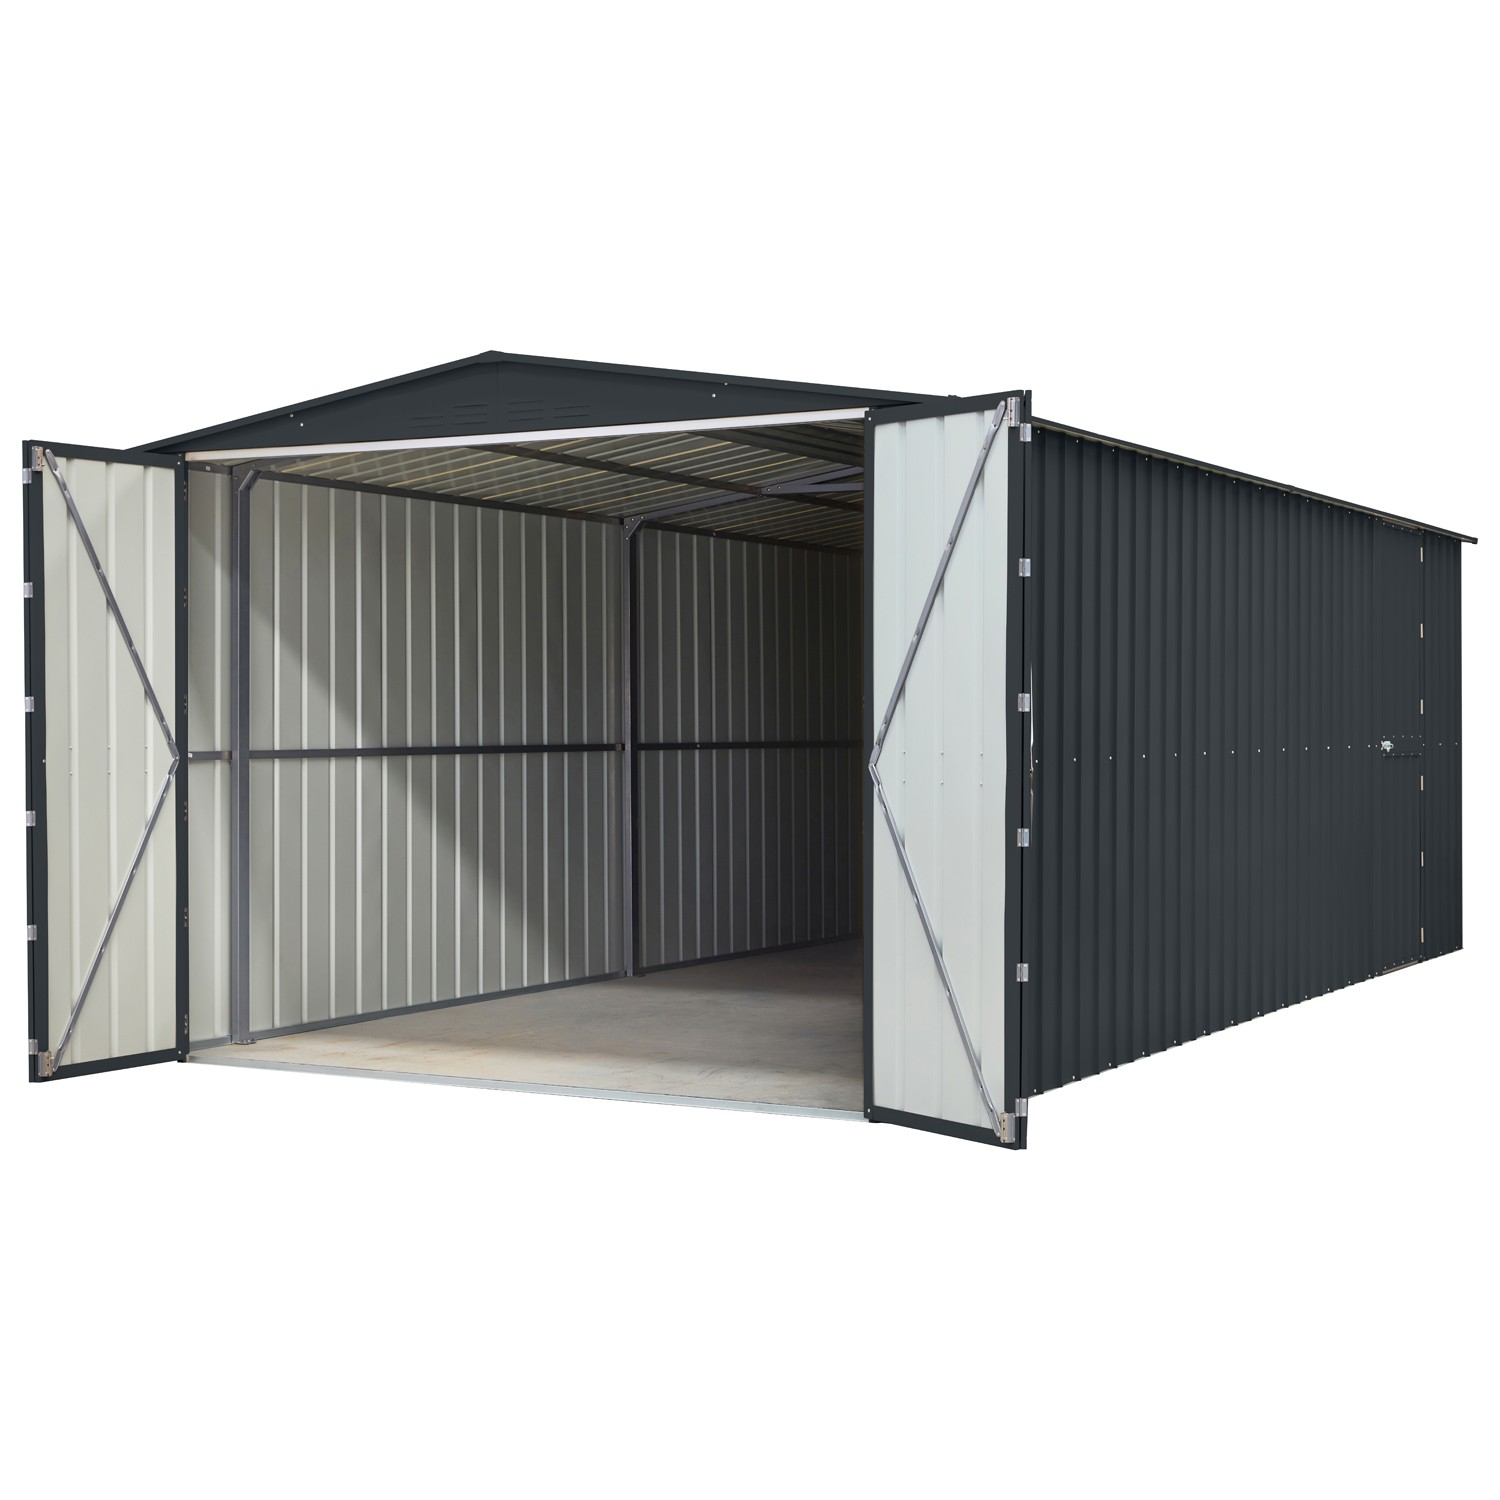 Lotus 10x23 Metal Double Hinged Metal Garage -Anthracite Grey